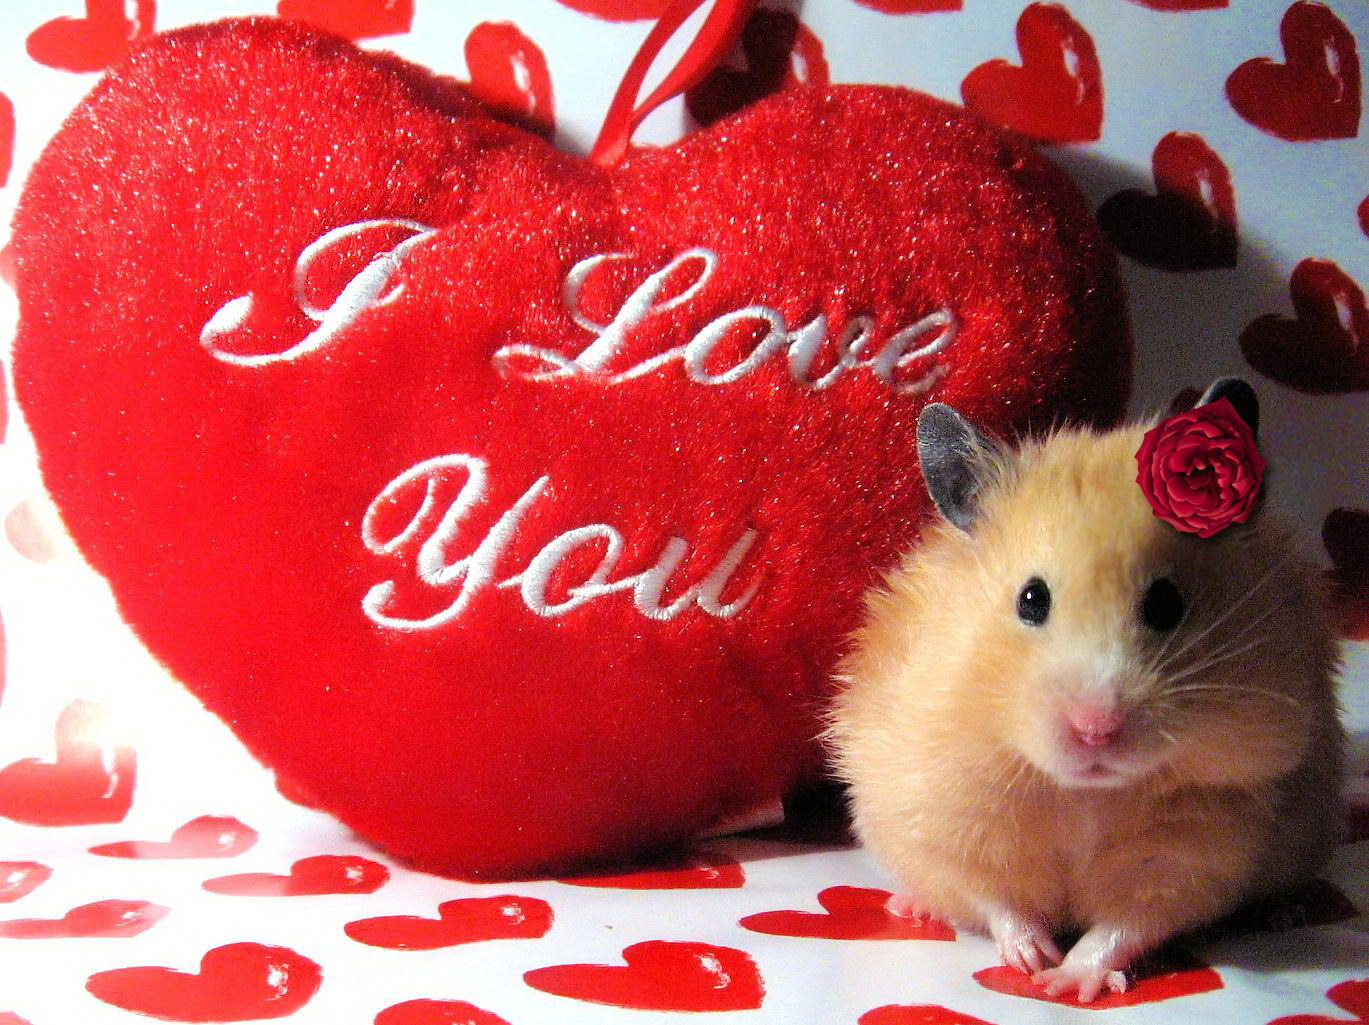 My Quotes: i love ♥ you heart HD wallpapers - I ♥ You images